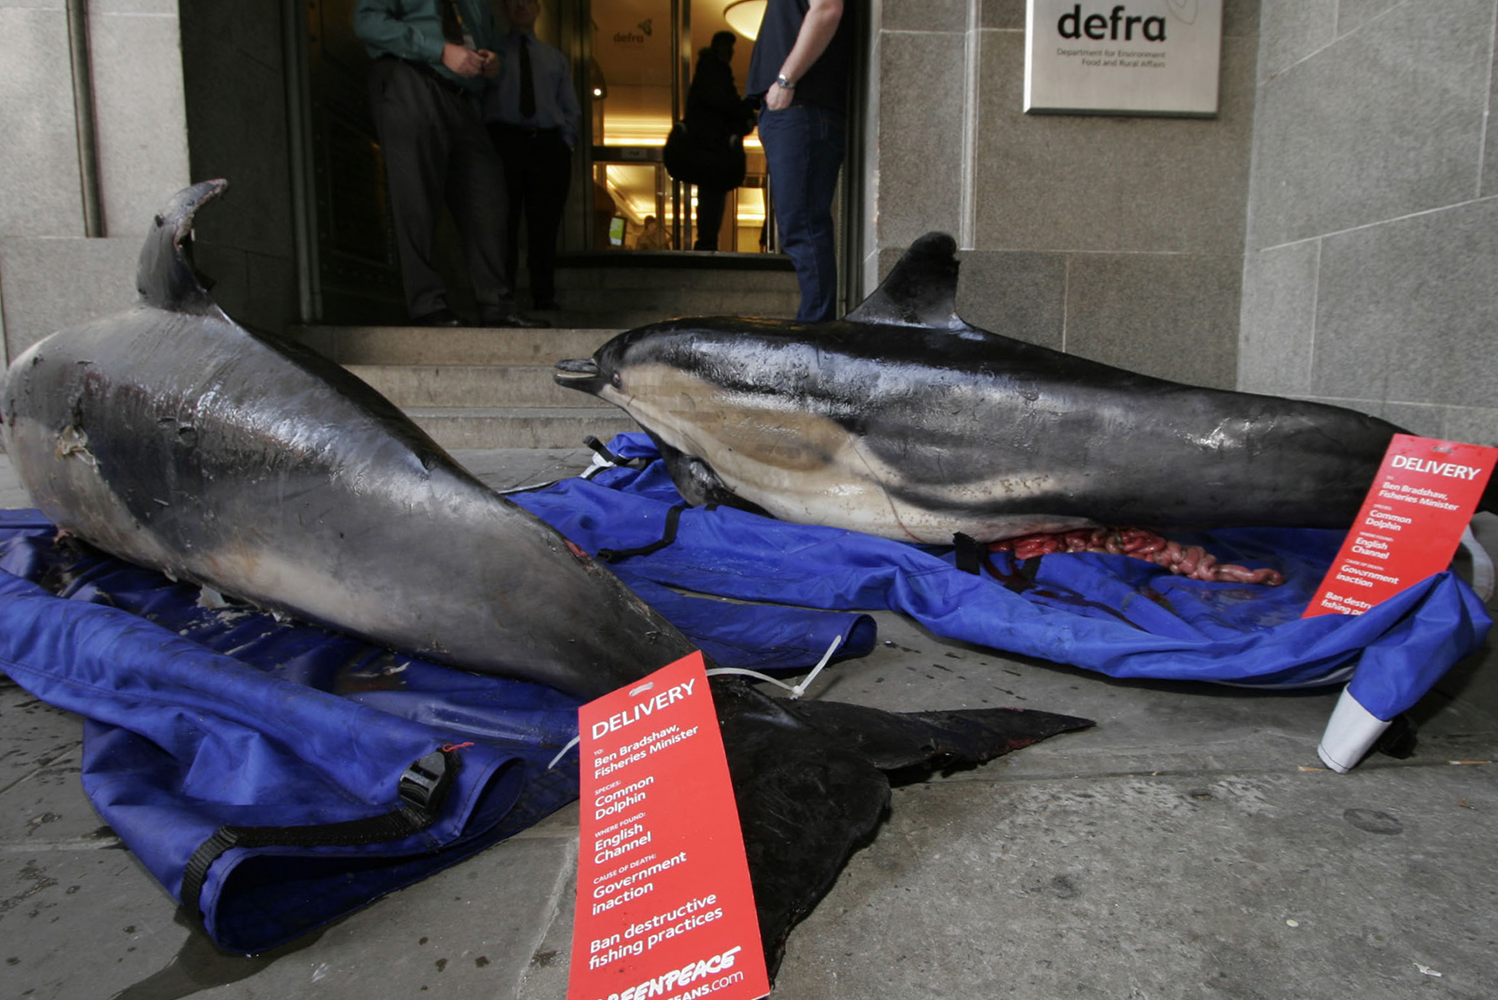 Campaign_Greenpeace_Oceans_DeadDolphin_BodyTag.png